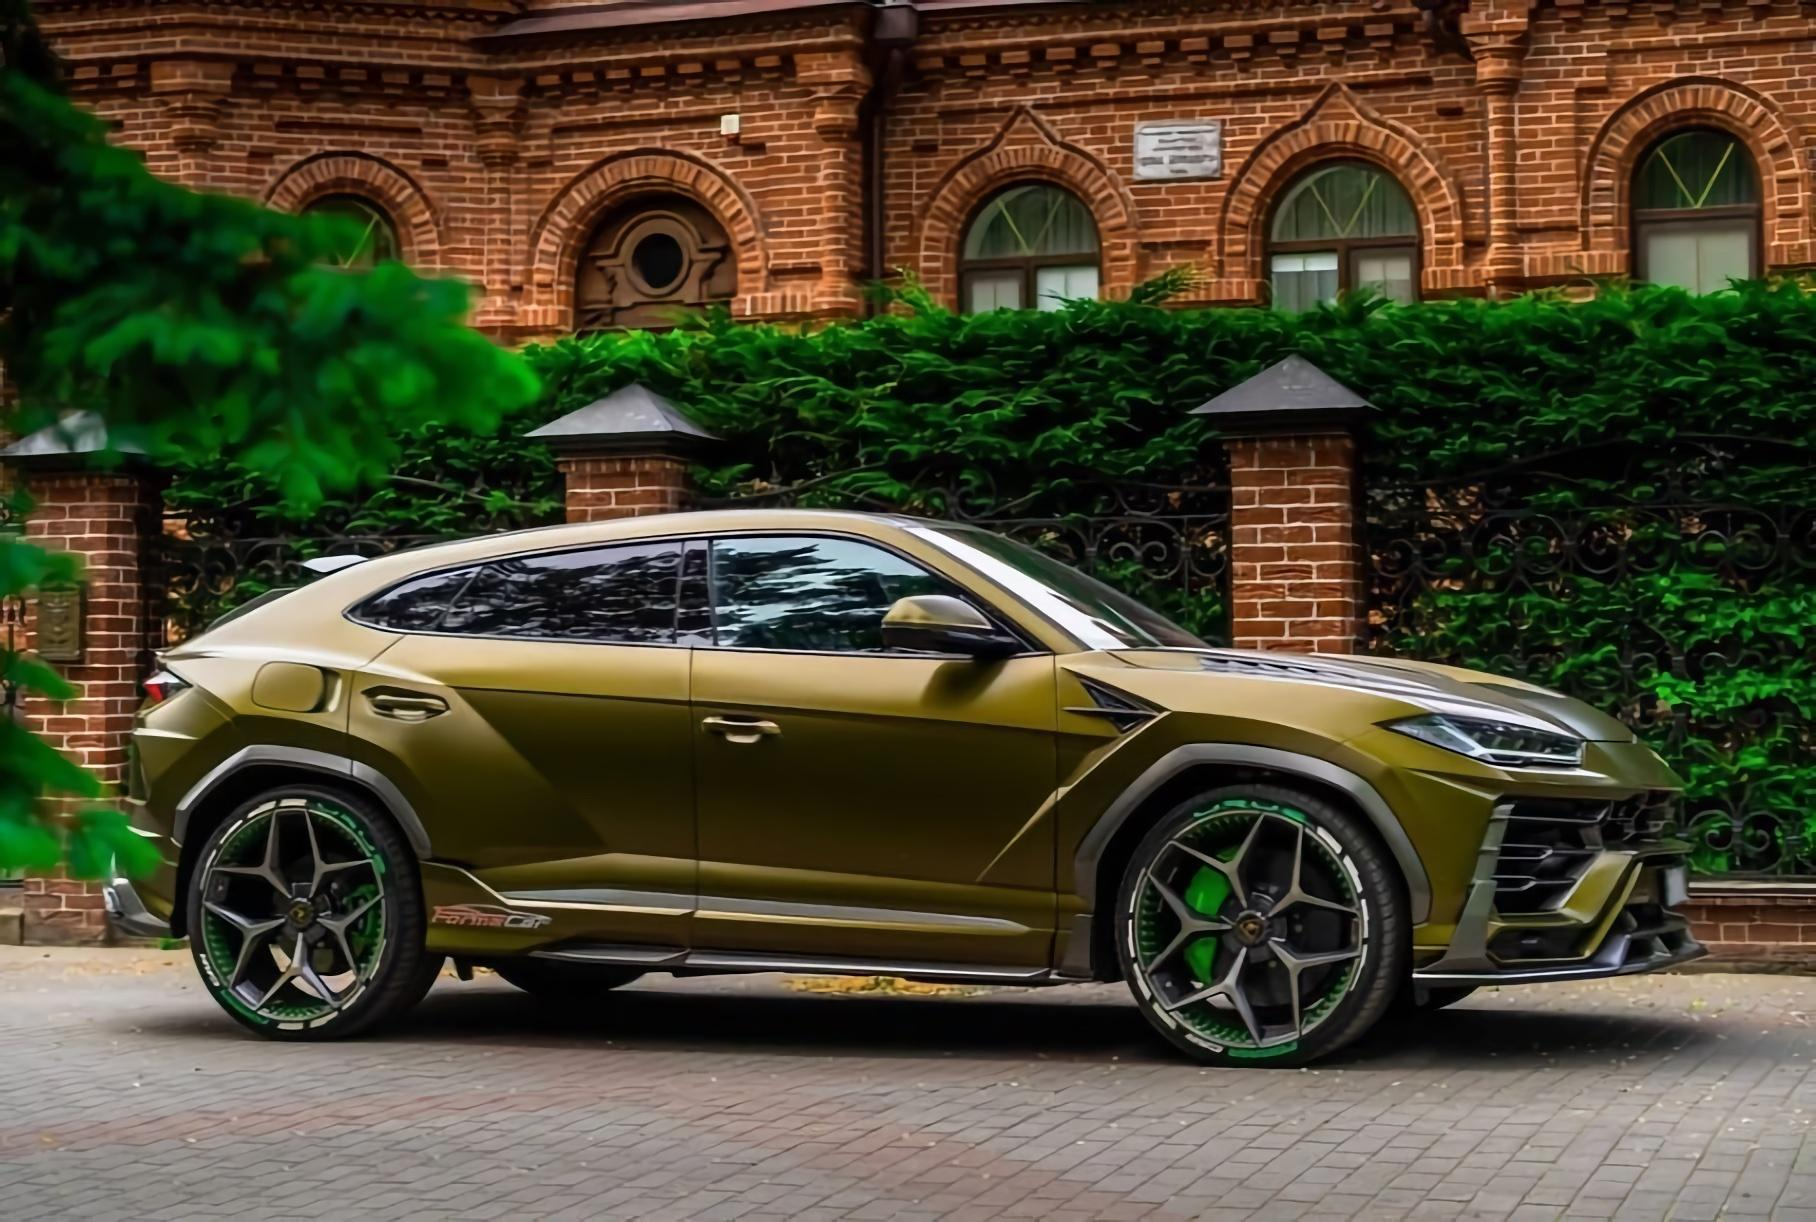 A Lamborghini Urus customized by SCL Global Concept for the FormaCar Mobile App team just went on sale in Krasnodar, Russia, for 29,500,000 RUB (about 400,000 USD).